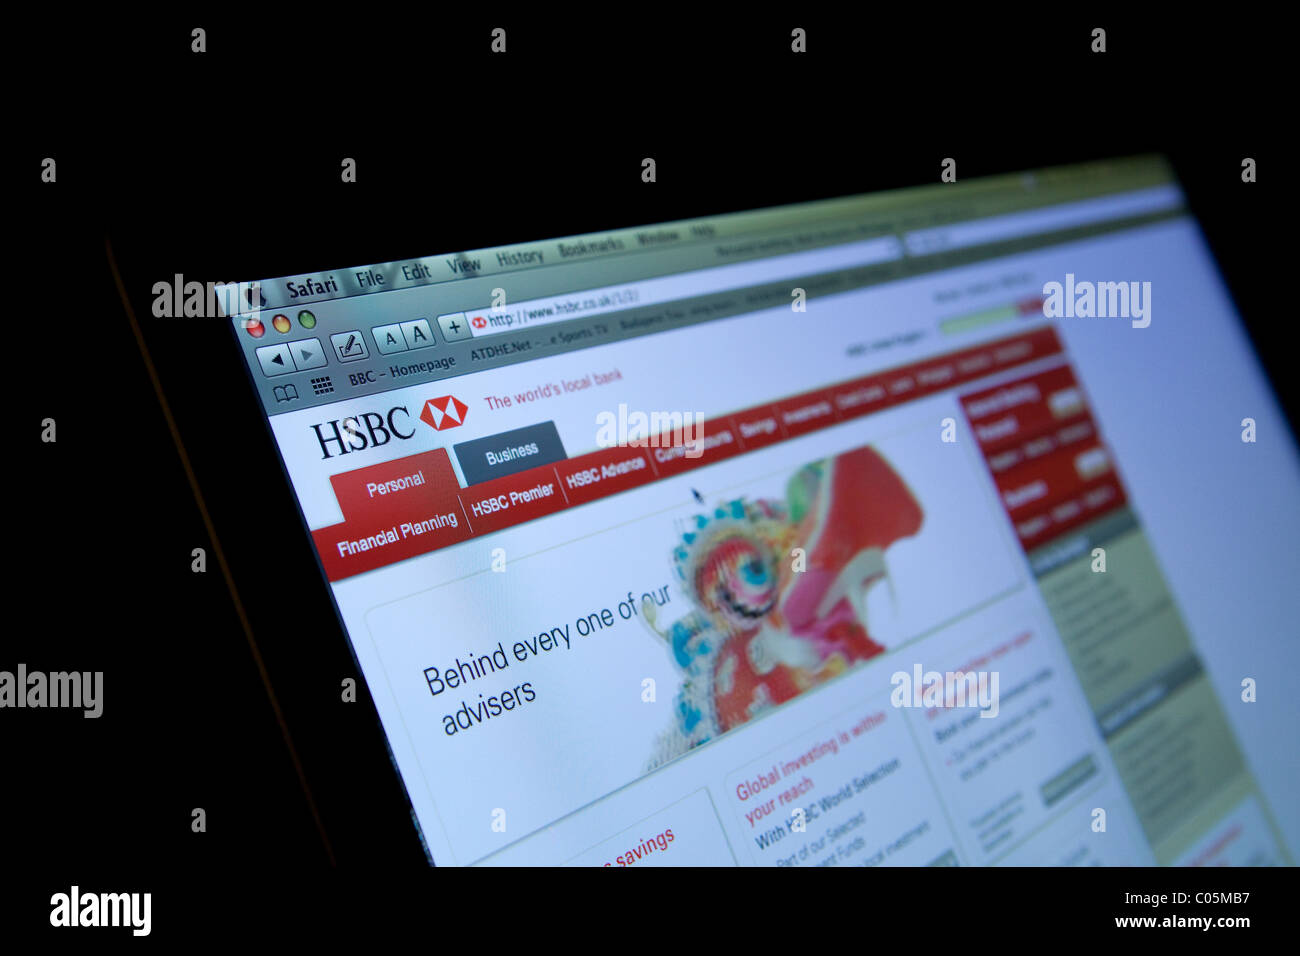 HSBC on-line banking home page - Stock Image